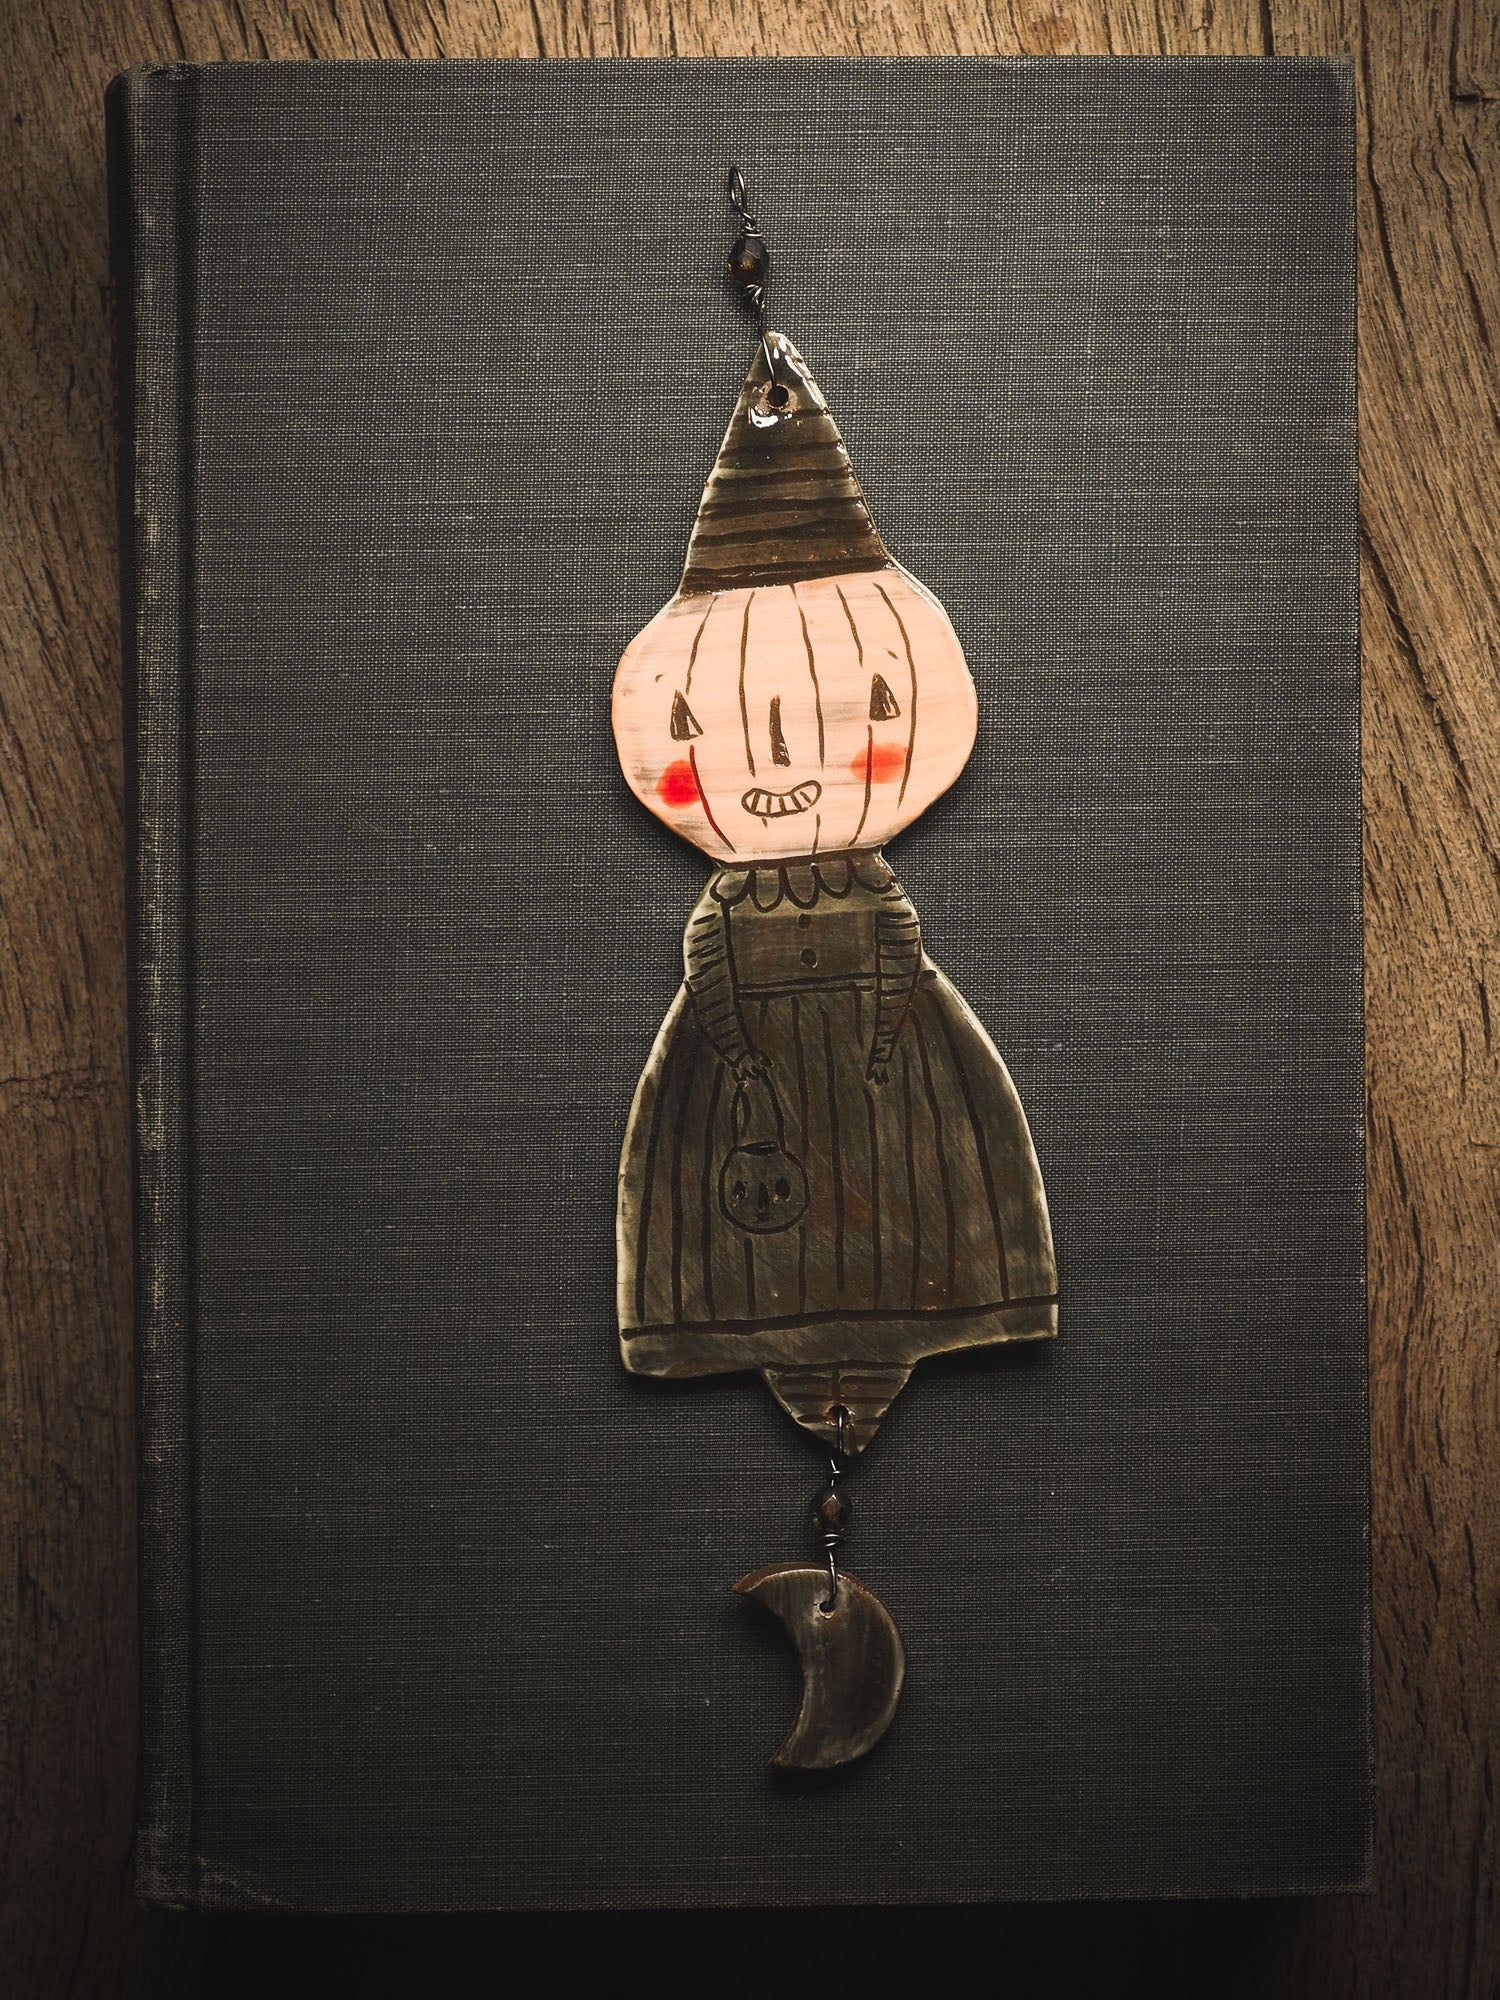 An original handmade Halloween ornament by Idania Salcido, Danita Art. Each ornament is hand carved with pumpkins, witches, cats, jack-o-lanterns and moons.  Made with fired glazed ceramics, this little witch, jack-o-lantern and cat is carved with delicate patterns that make each ornament a one of a kind work of art.